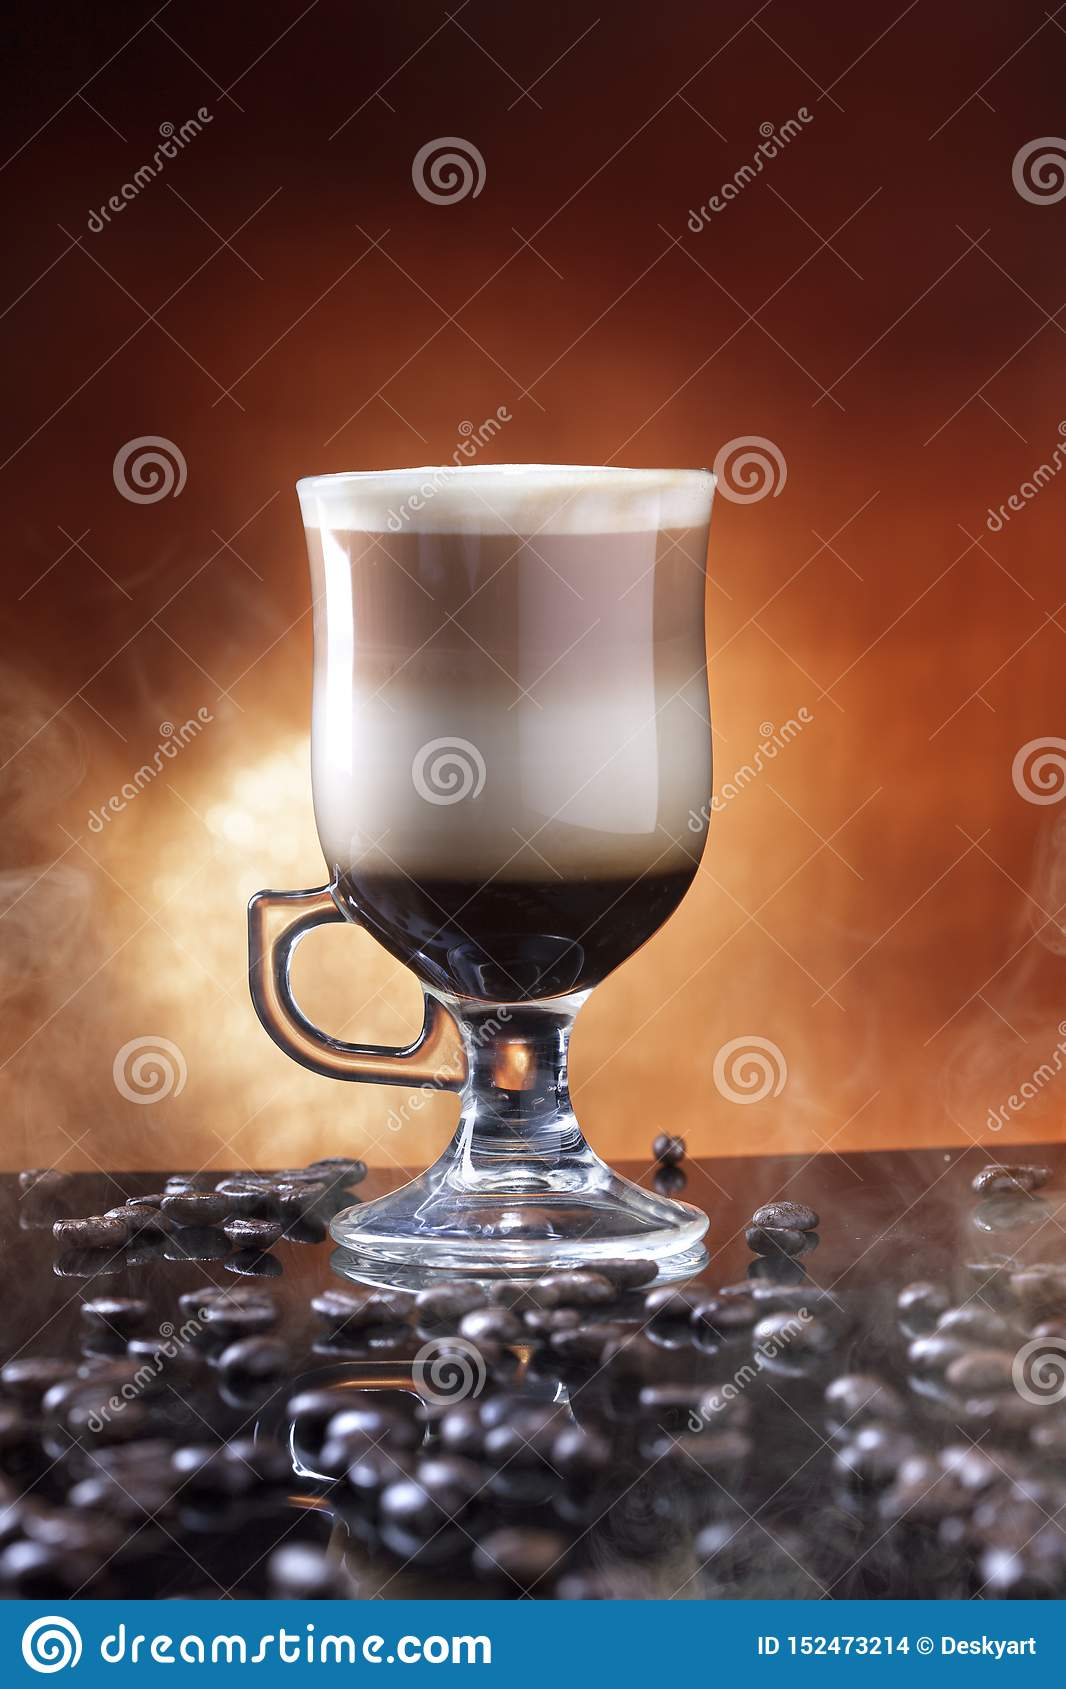 A Glass Of Coffee Latte On A Table Sprinkled With Coffee ...